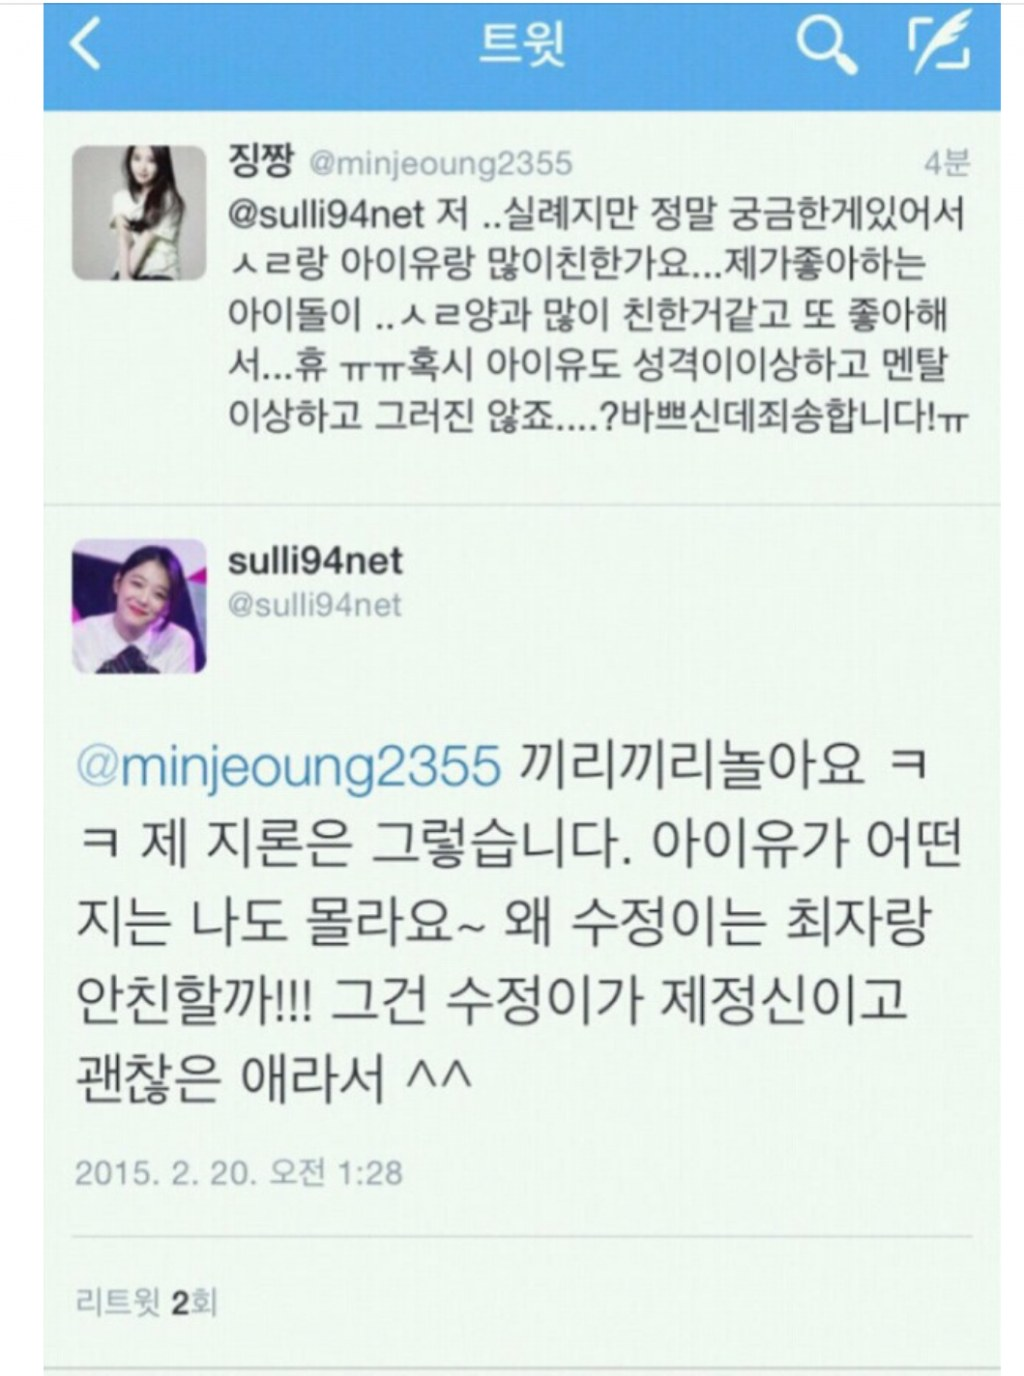 chen and luna dating rumor